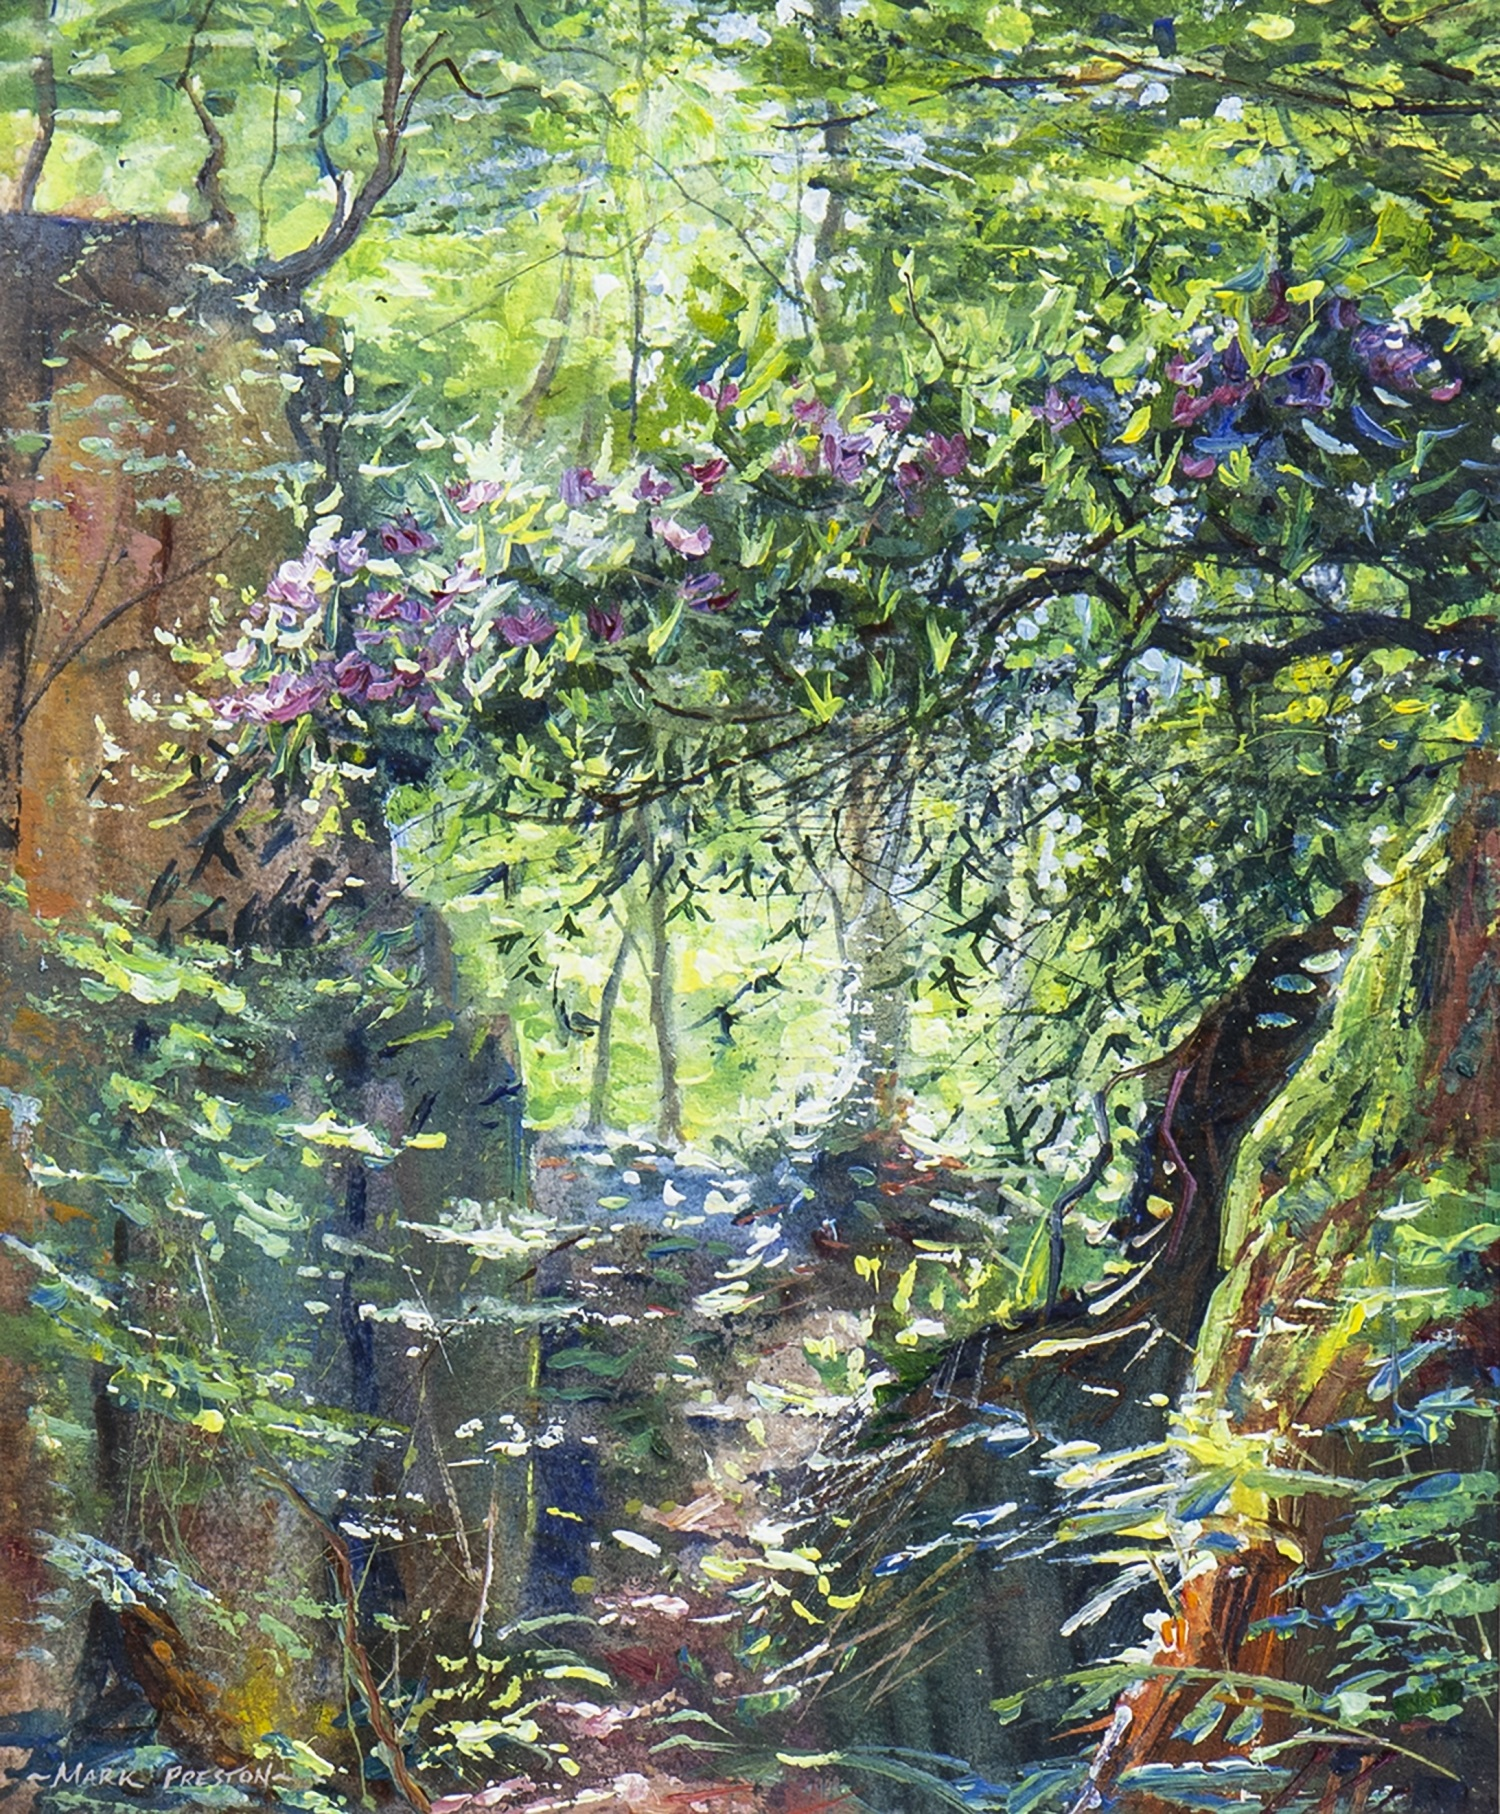 Lot 676 - RHODODENDRONS, DUKE'S QUARRY, A MIXED MEDIA BY MARK PRESTON